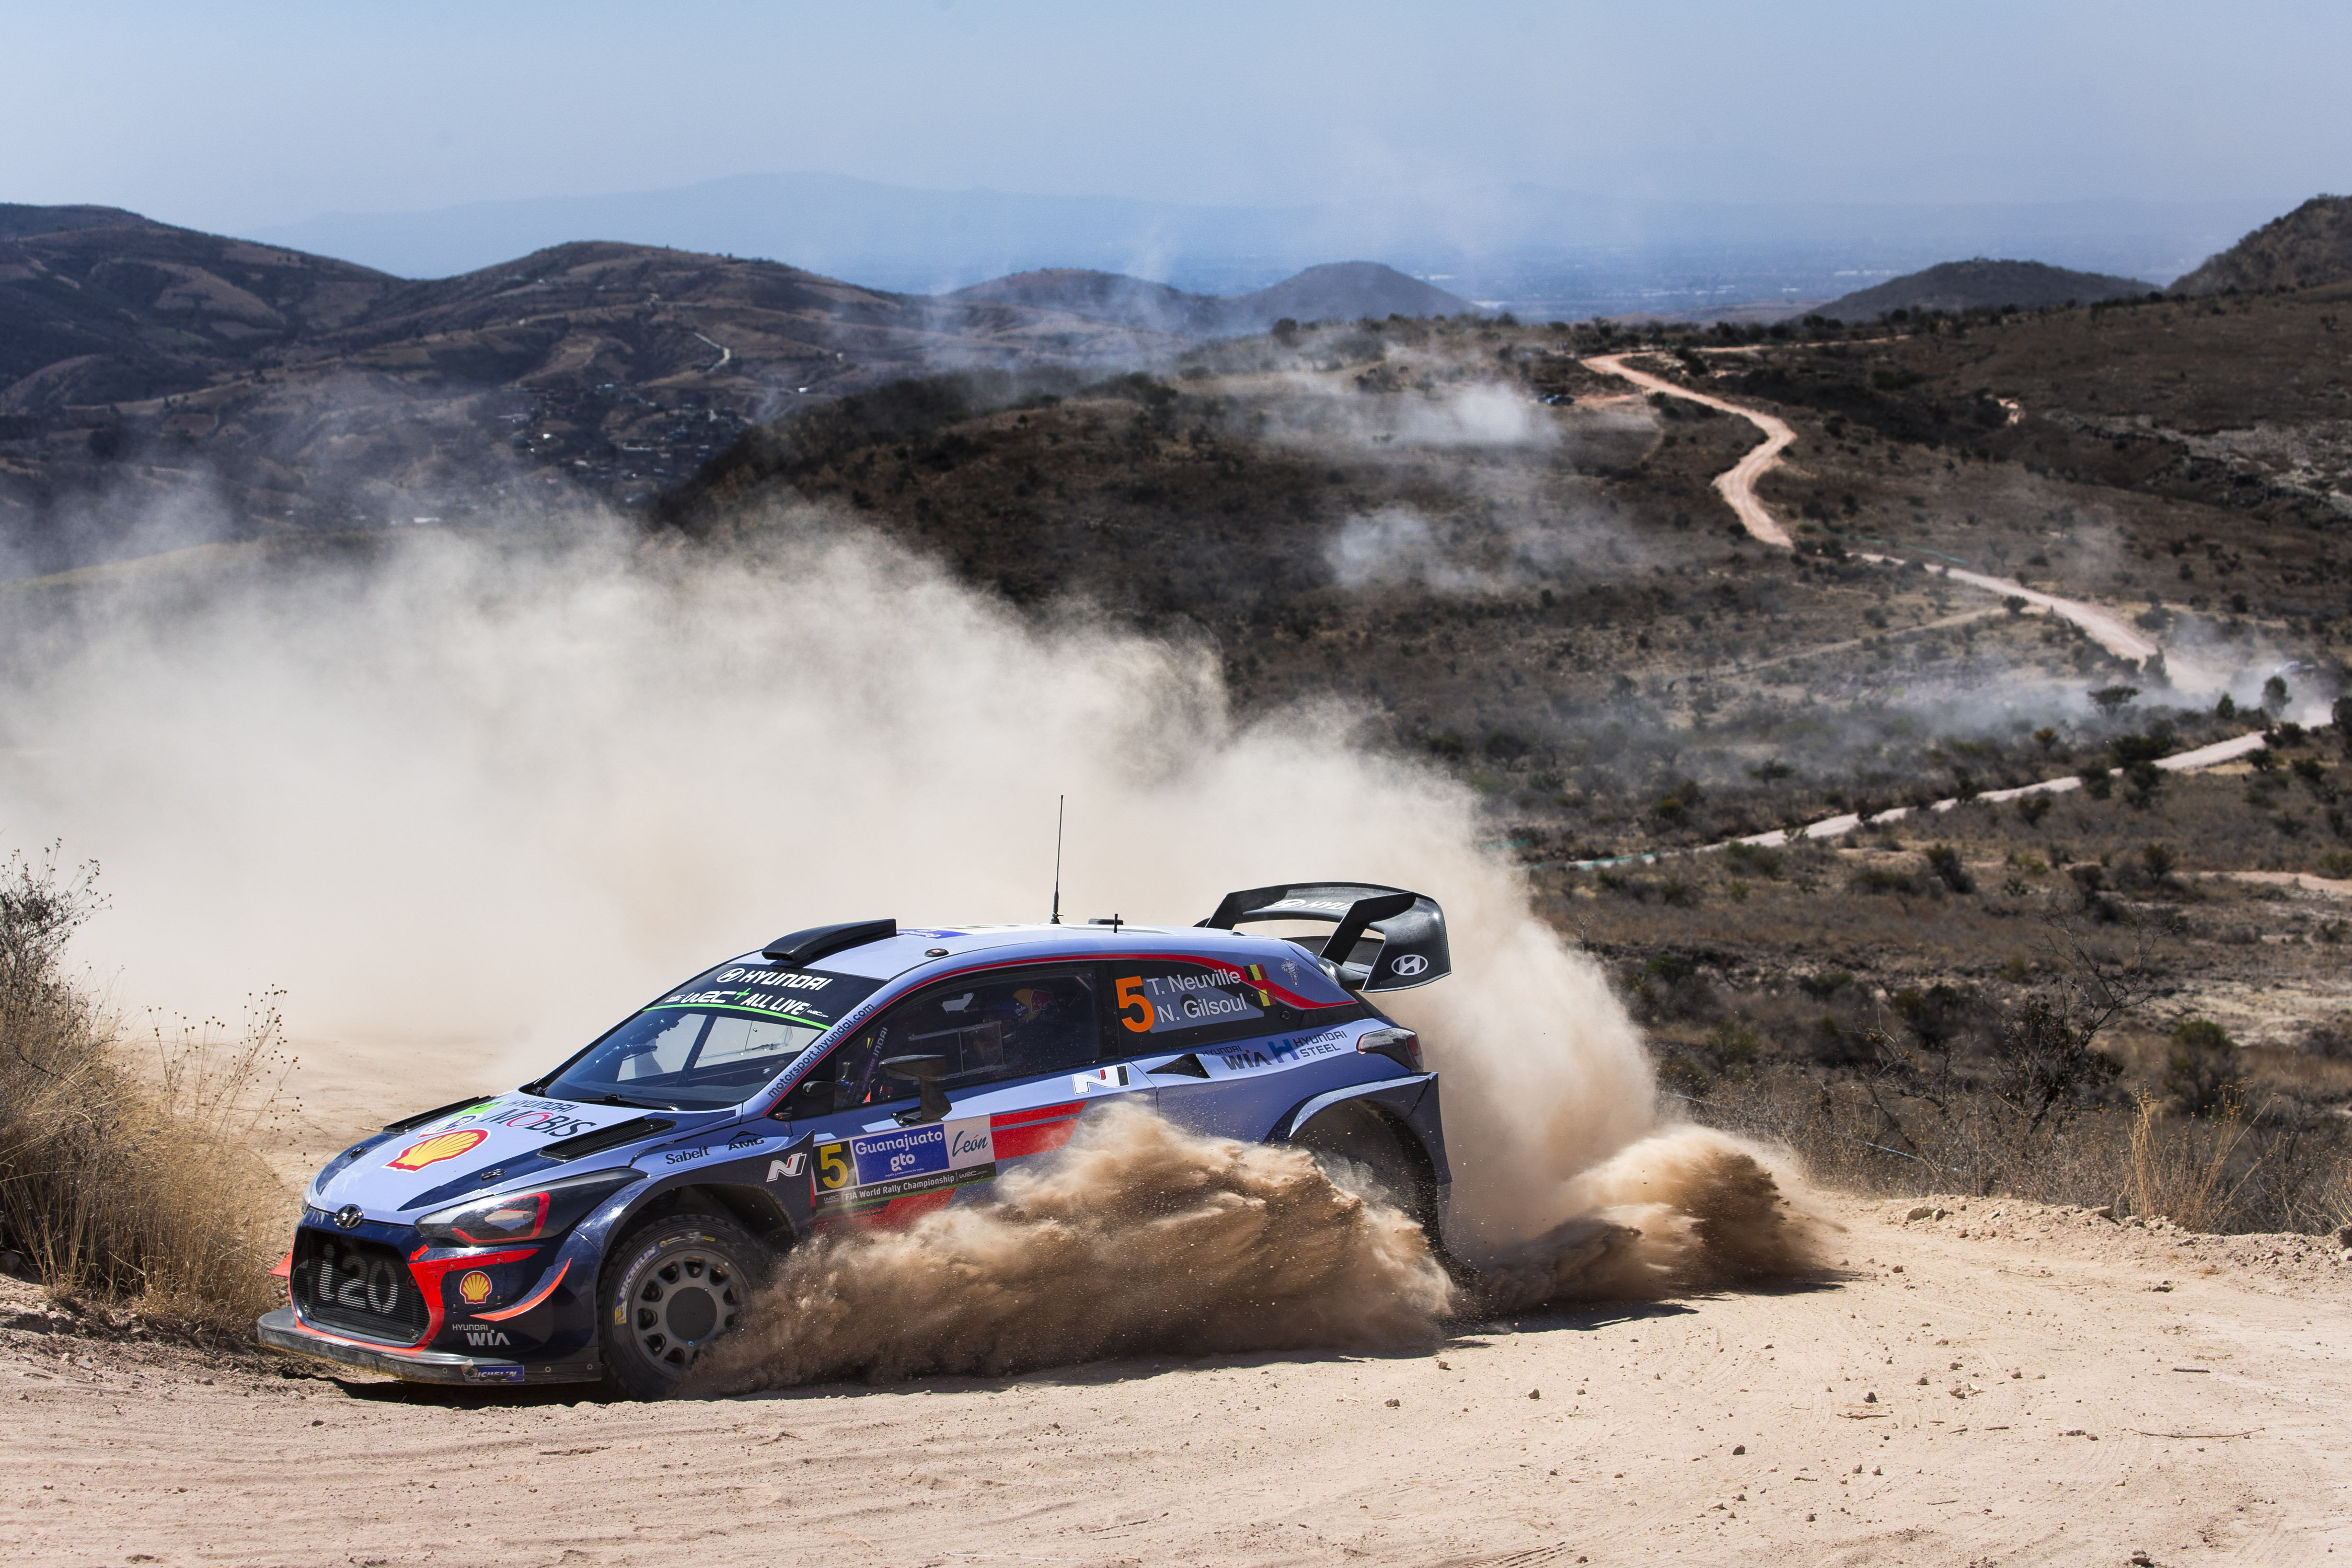 rally mexico 2018 review s bastien ogier and julien ingrassia conquer the mexican gravel. Black Bedroom Furniture Sets. Home Design Ideas